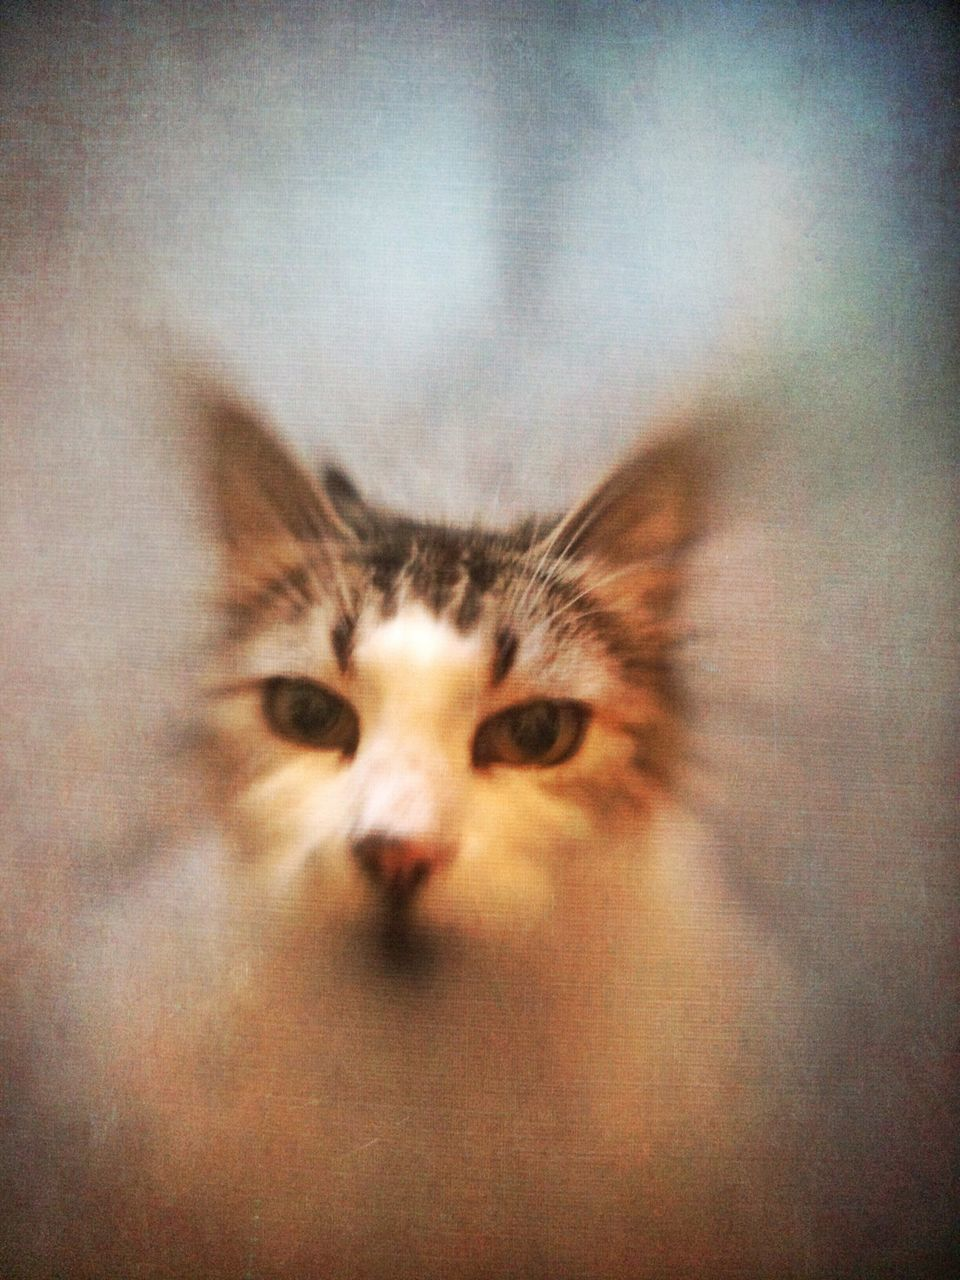 one animal, domestic cat, looking at camera, indoors, animal themes, pets, close-up, portrait, no people, domestic animals, feline, mammal, day